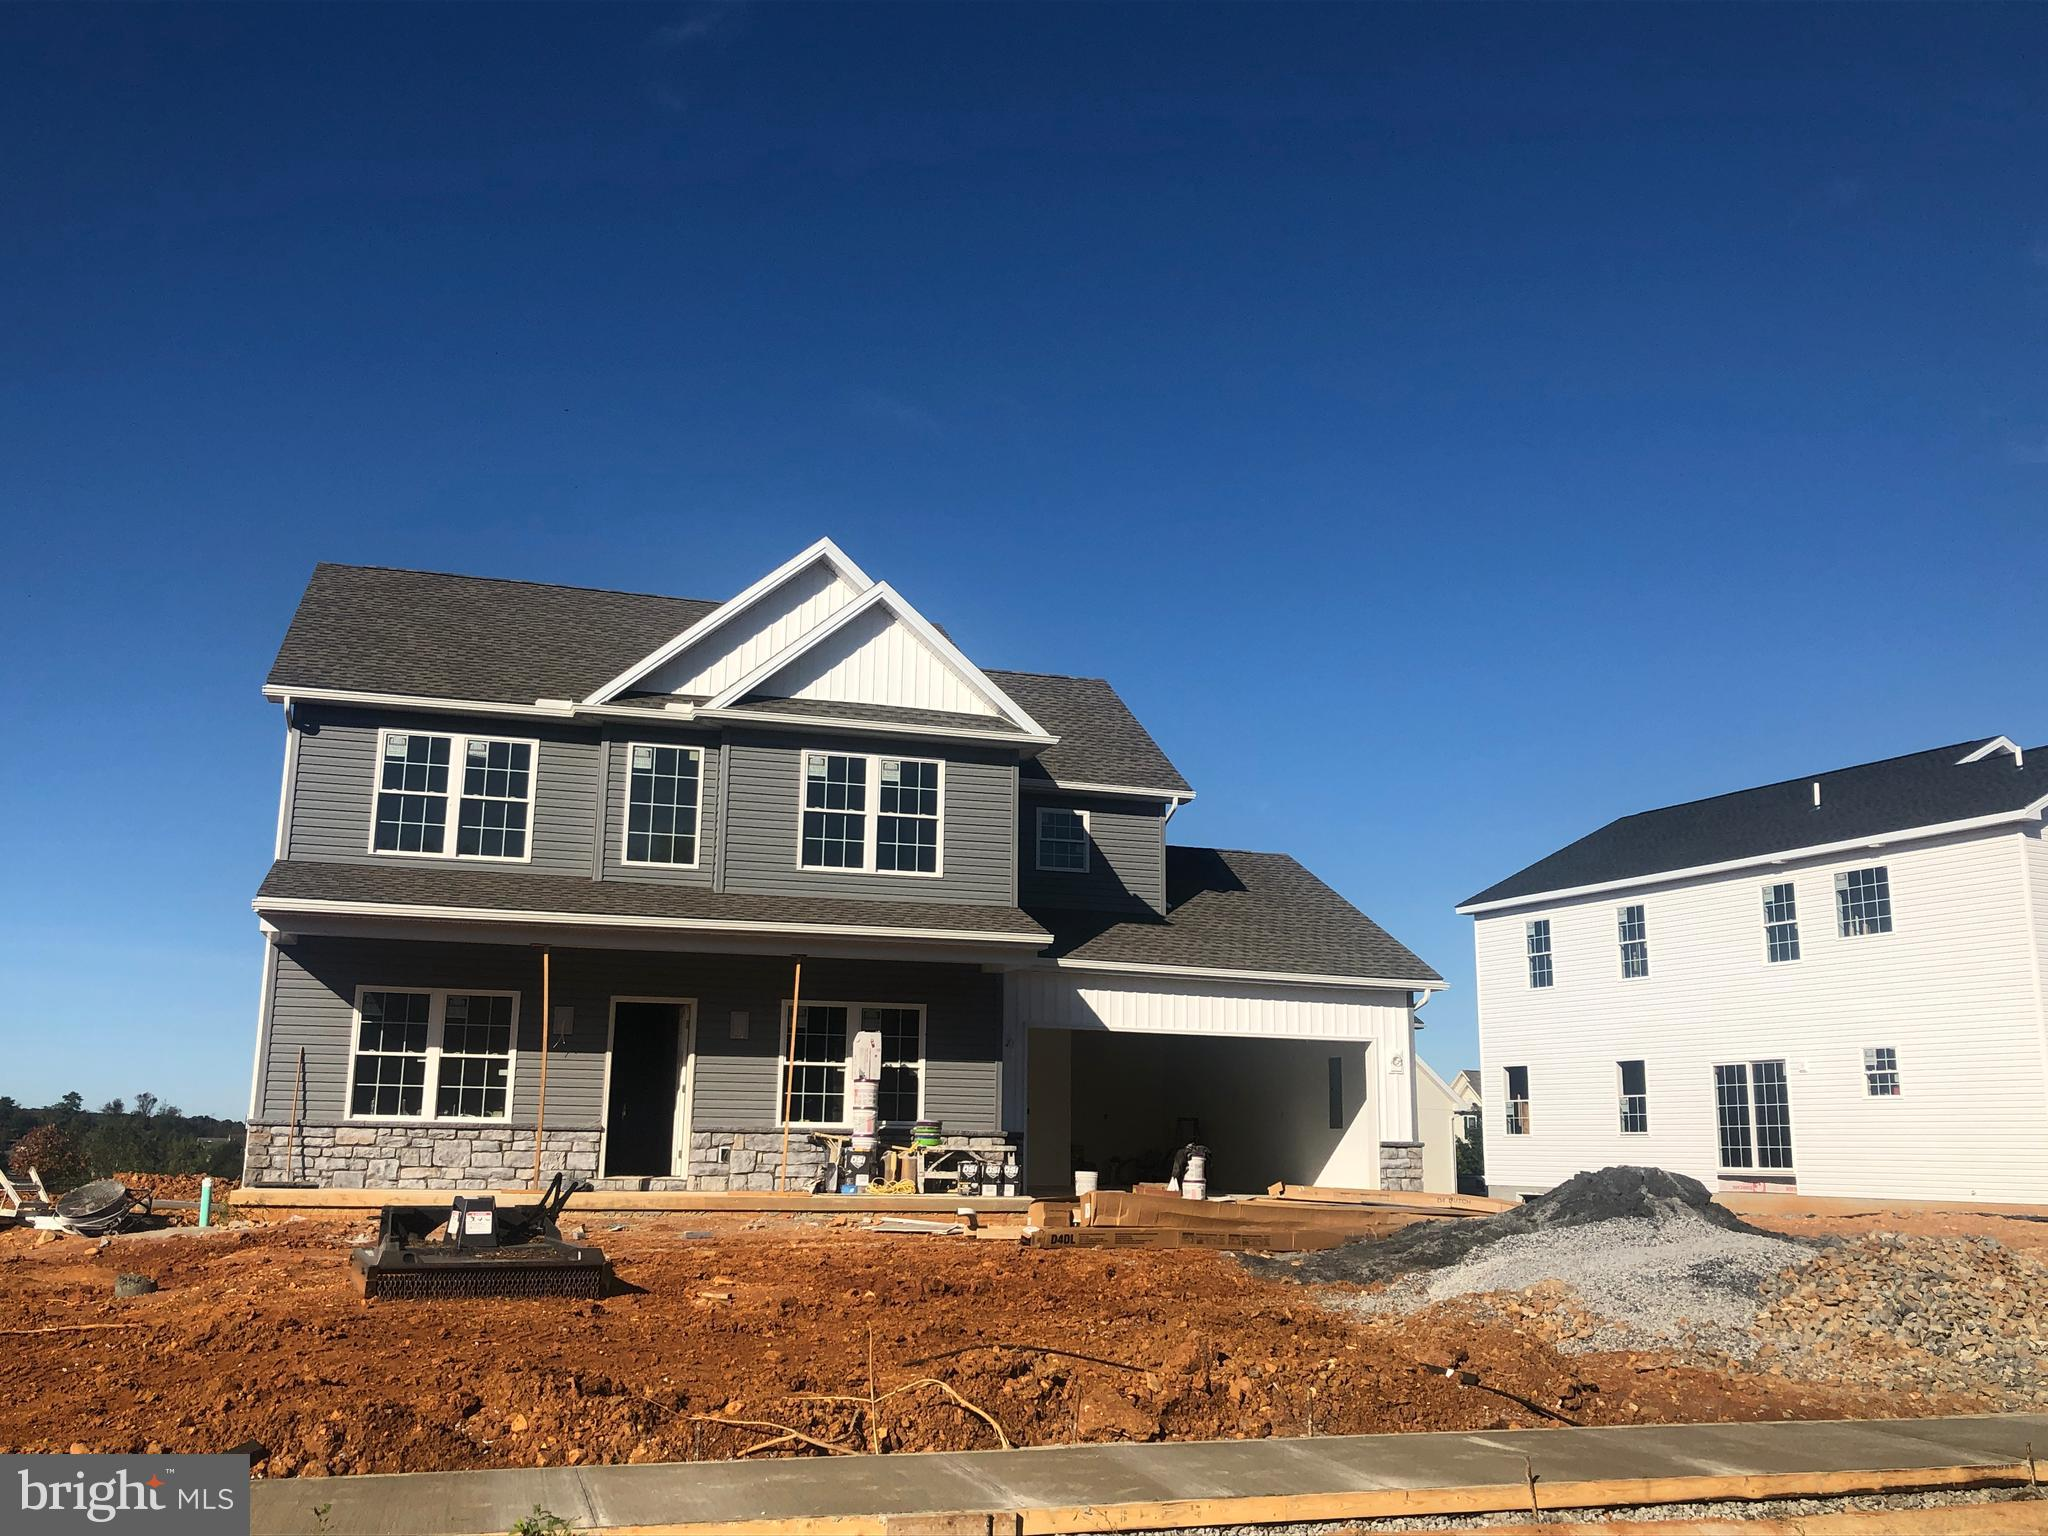 243 PARKWAY DRIVE, MOUNT HOLLY SPRINGS, PA 17065